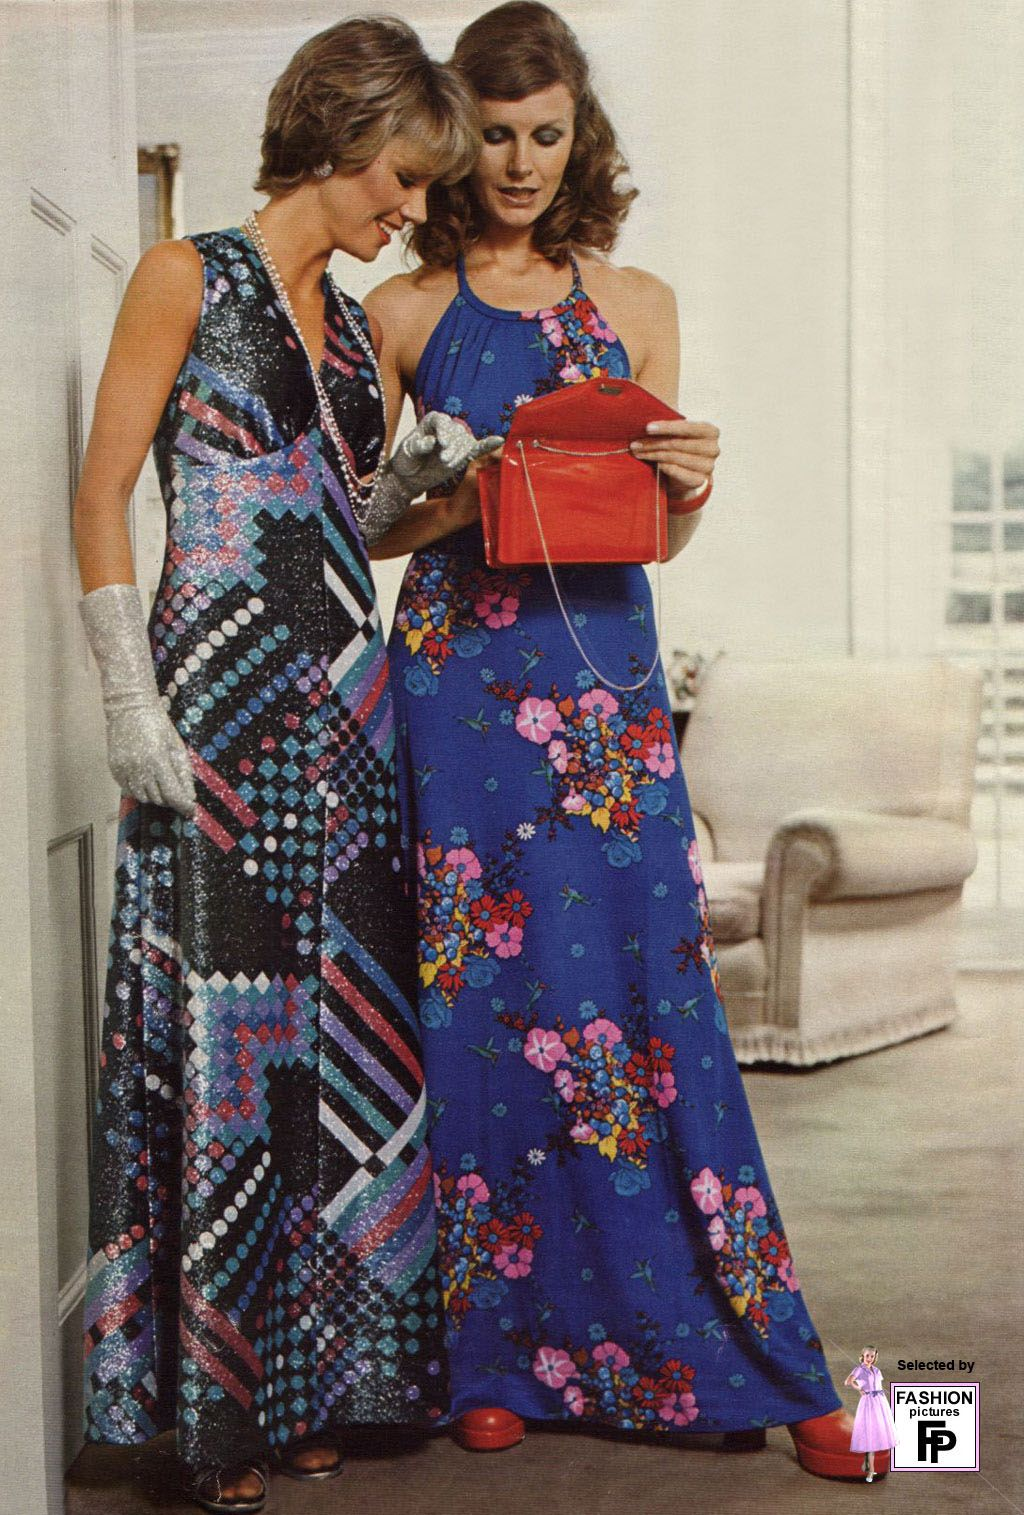 1970s Fashion I Always Loved My Maxi Or Midis But In Better Looking Patterns I M So Glad My Mom Was A Seamstress Fashion 1970s Fashion 70s Women Fashion [ 1515 x 1024 Pixel ]